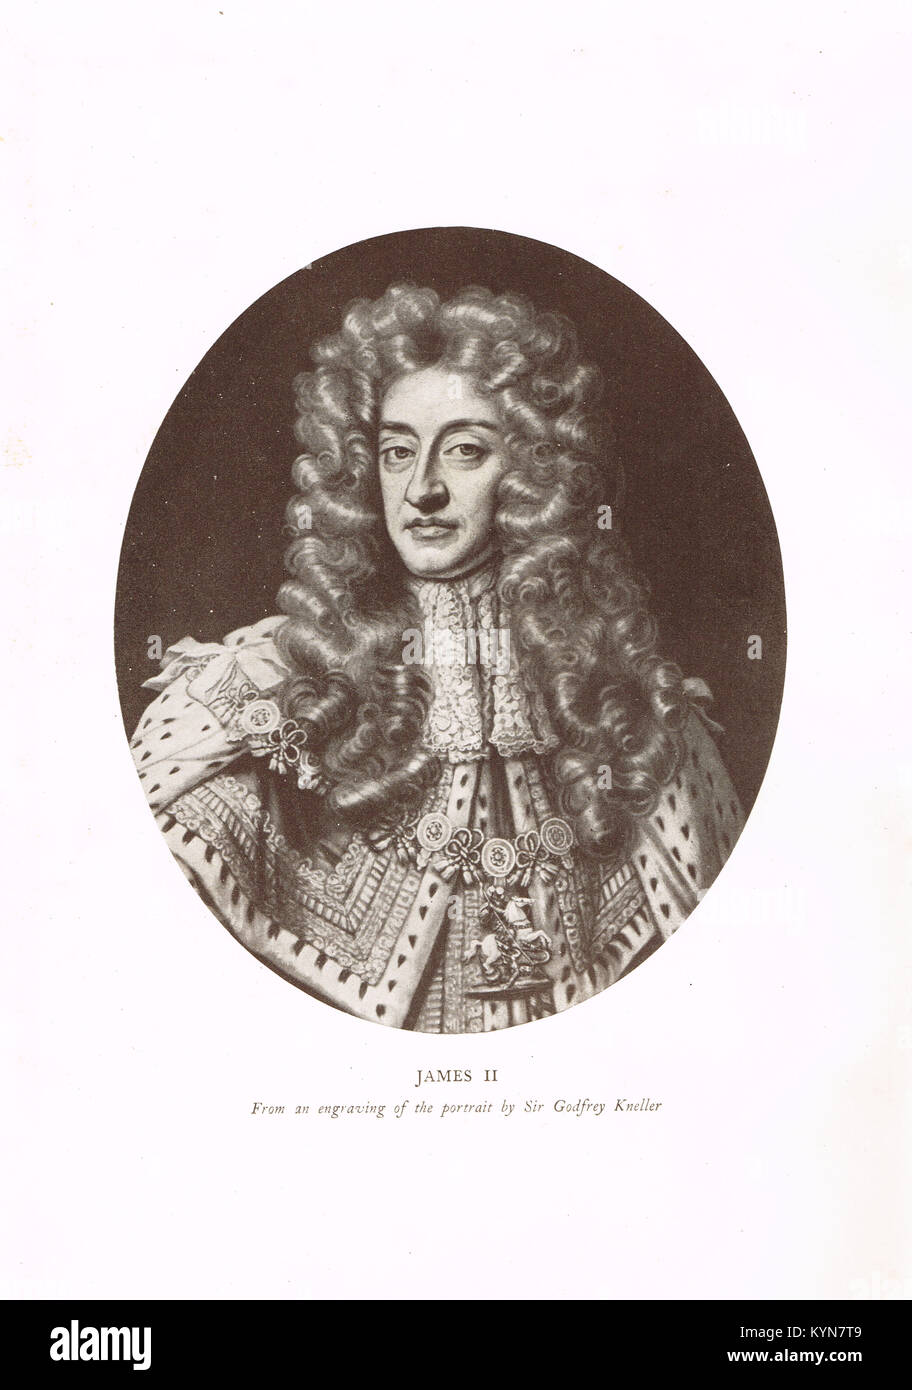 King James II of England, King of Scotland as James VII, 1633-1701, reigned 1685-1688, last Roman Catholic monarch - Stock Image